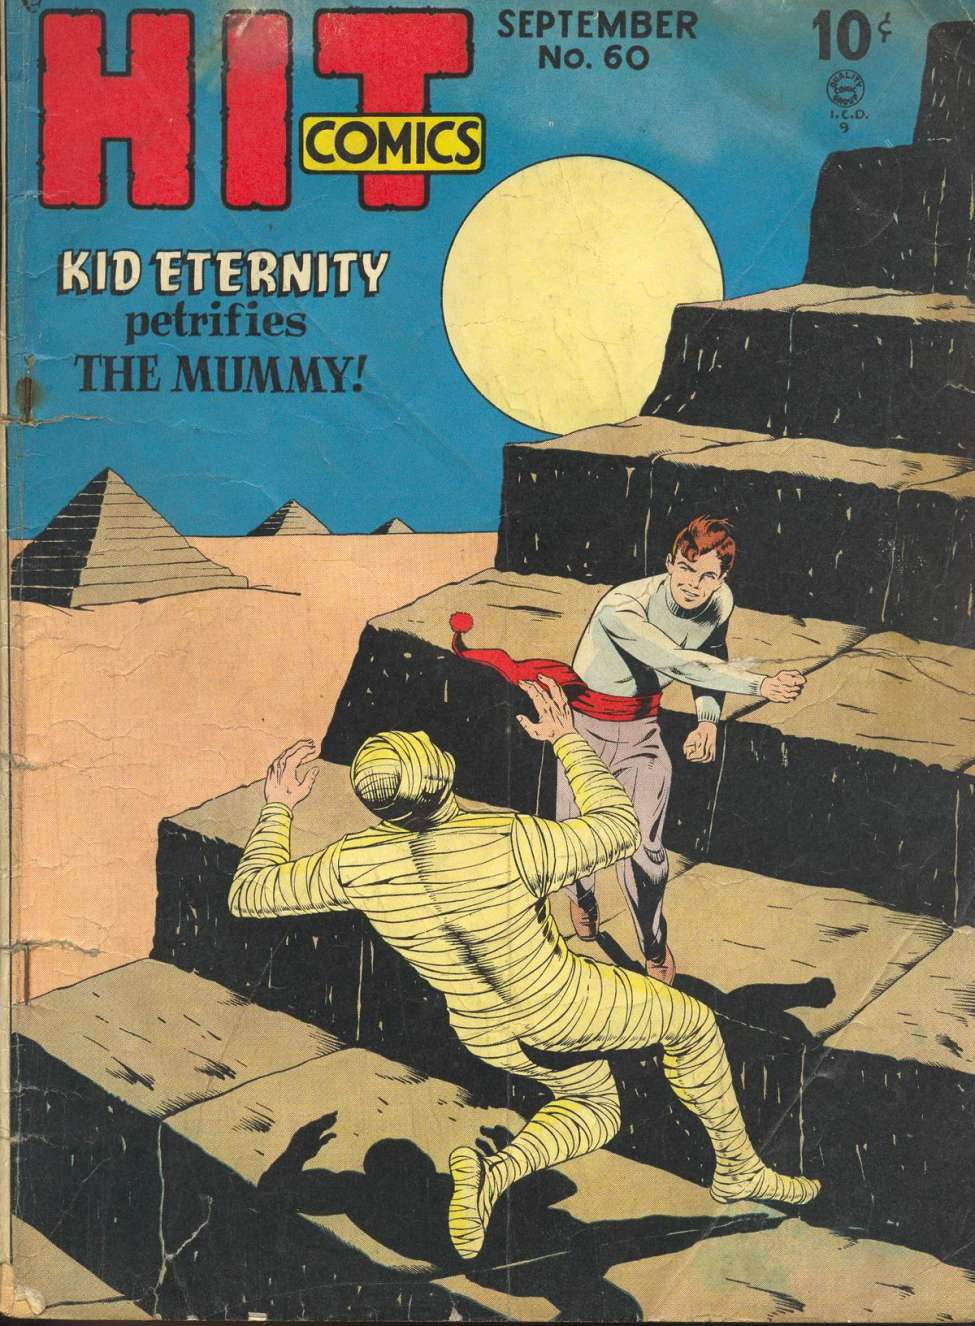 Comic Book Cover For Hit Comics #60